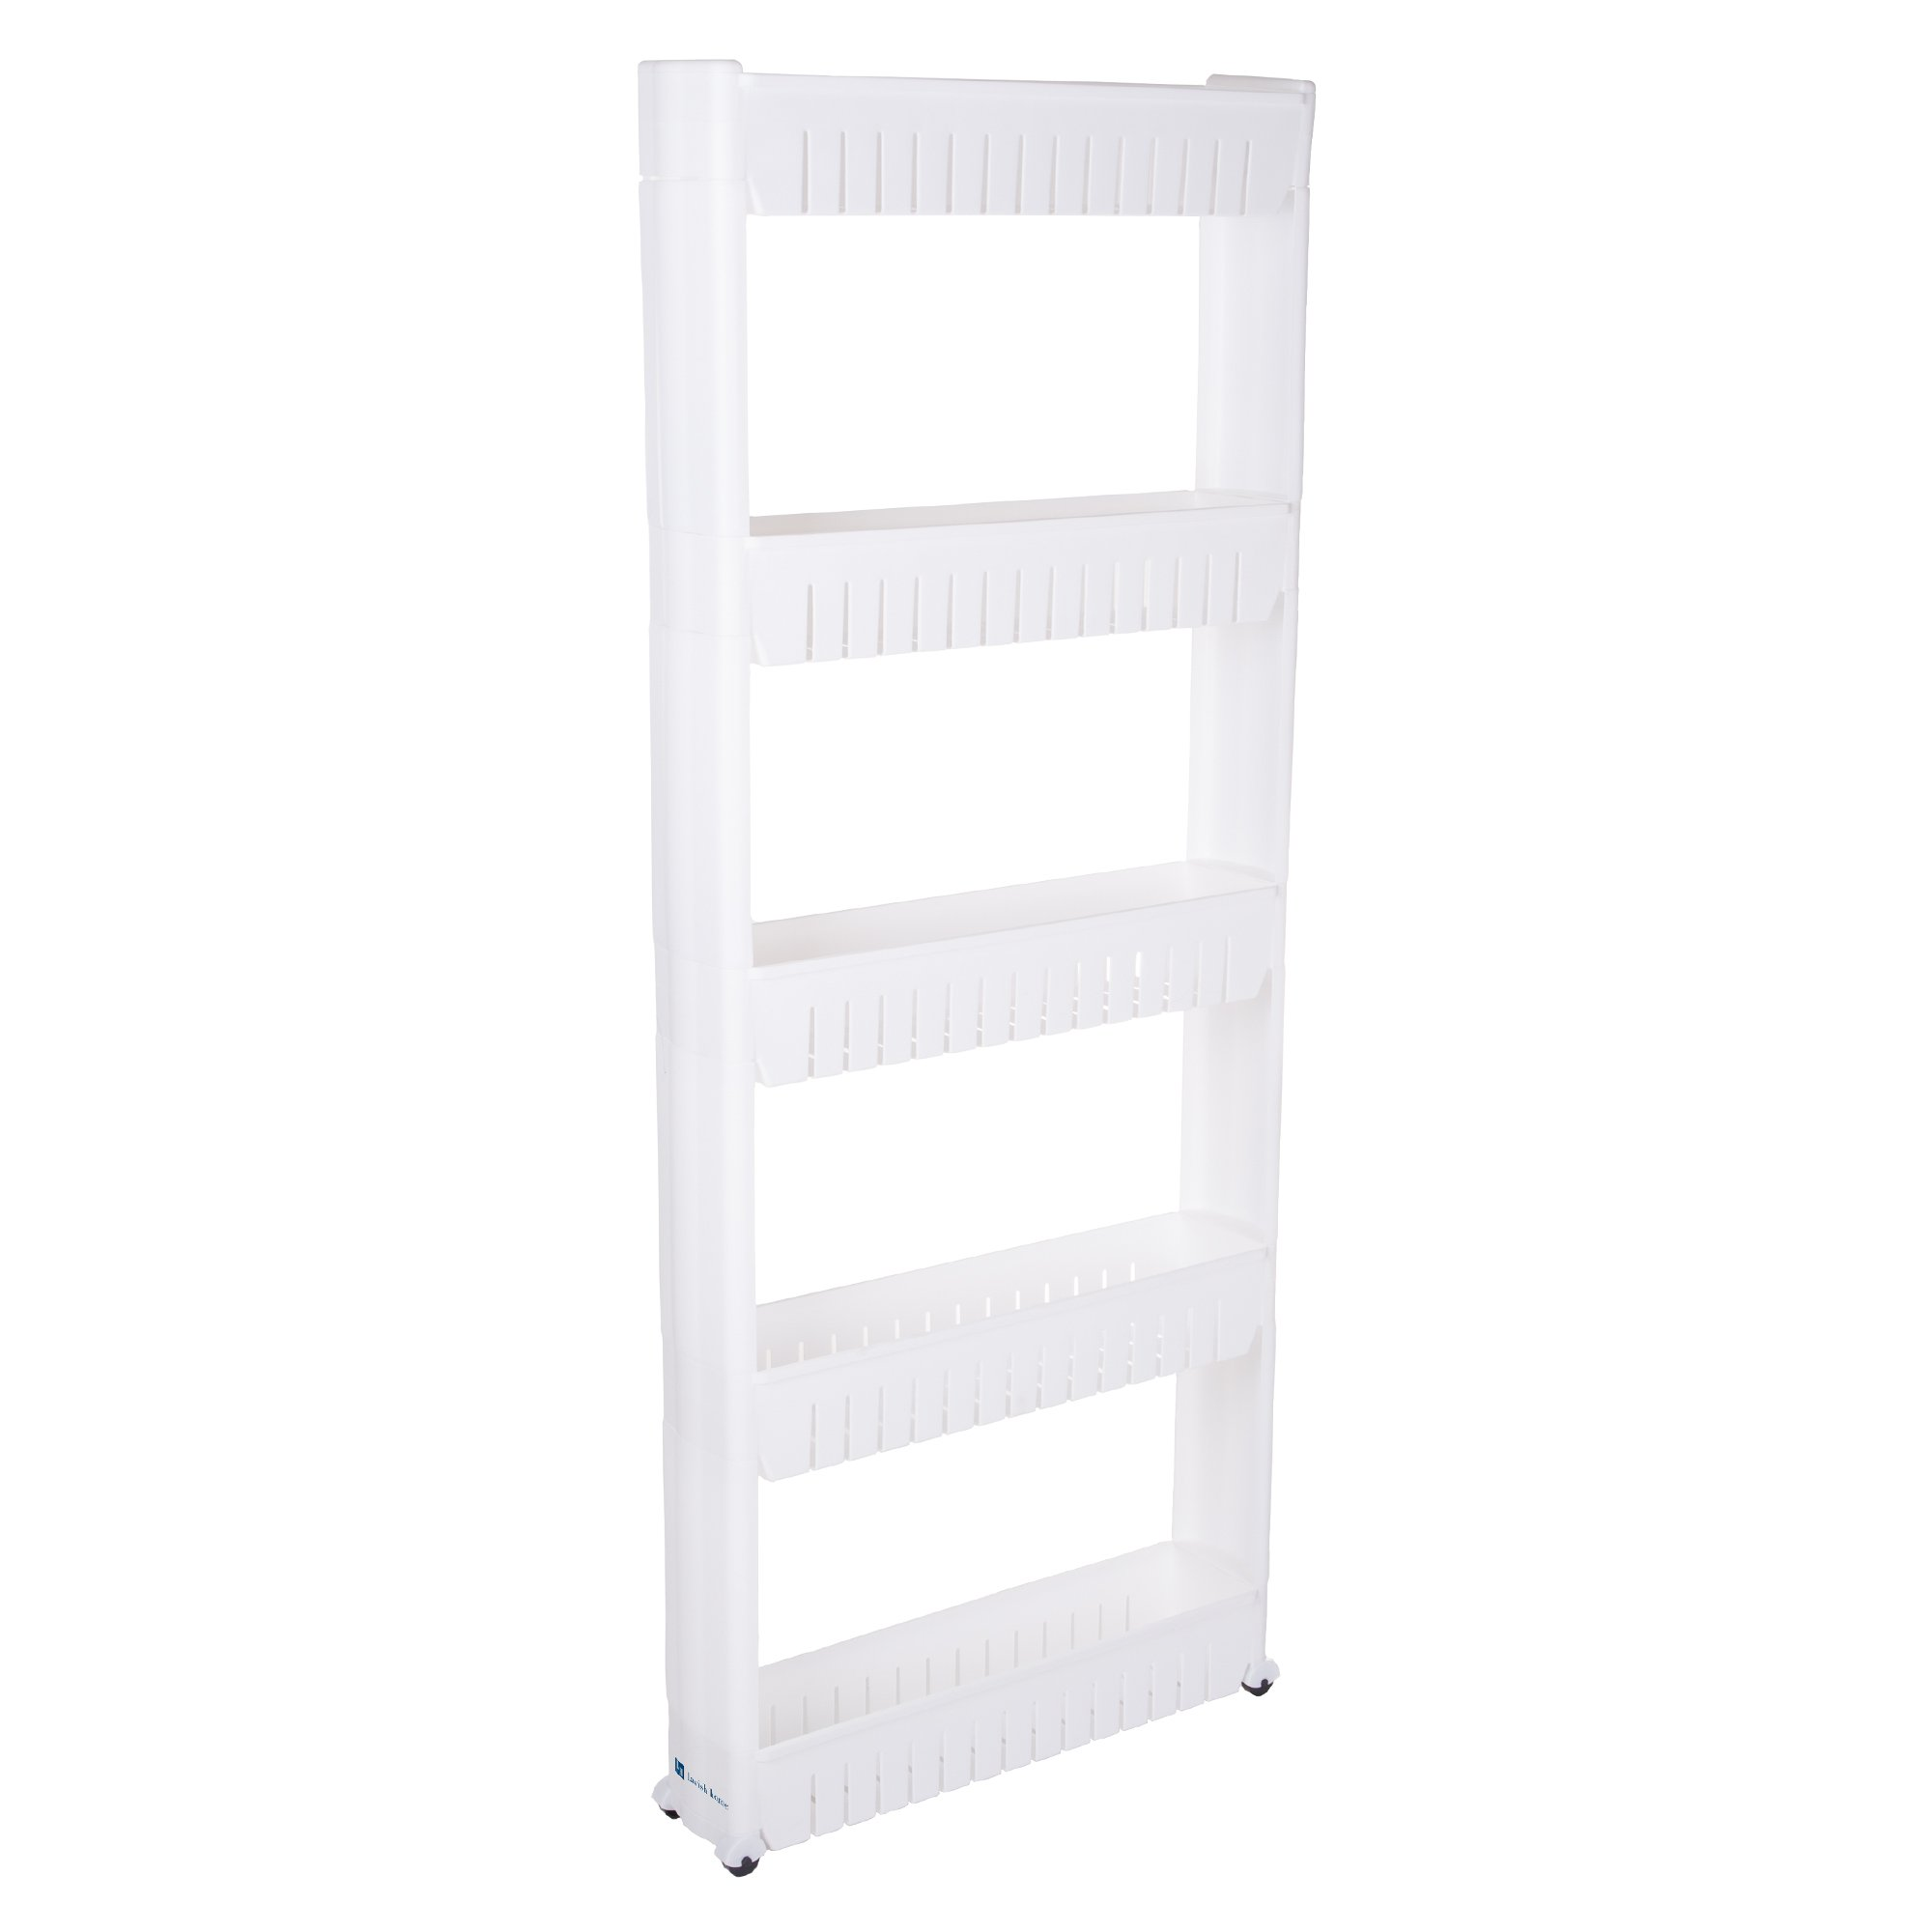 Mobile Shelving Unit Organizer with 5 Large Storage Baskets, Slim Slide Out Pantry Storage Rack for Narrow Spaces by Everyday Home by Lavish Home